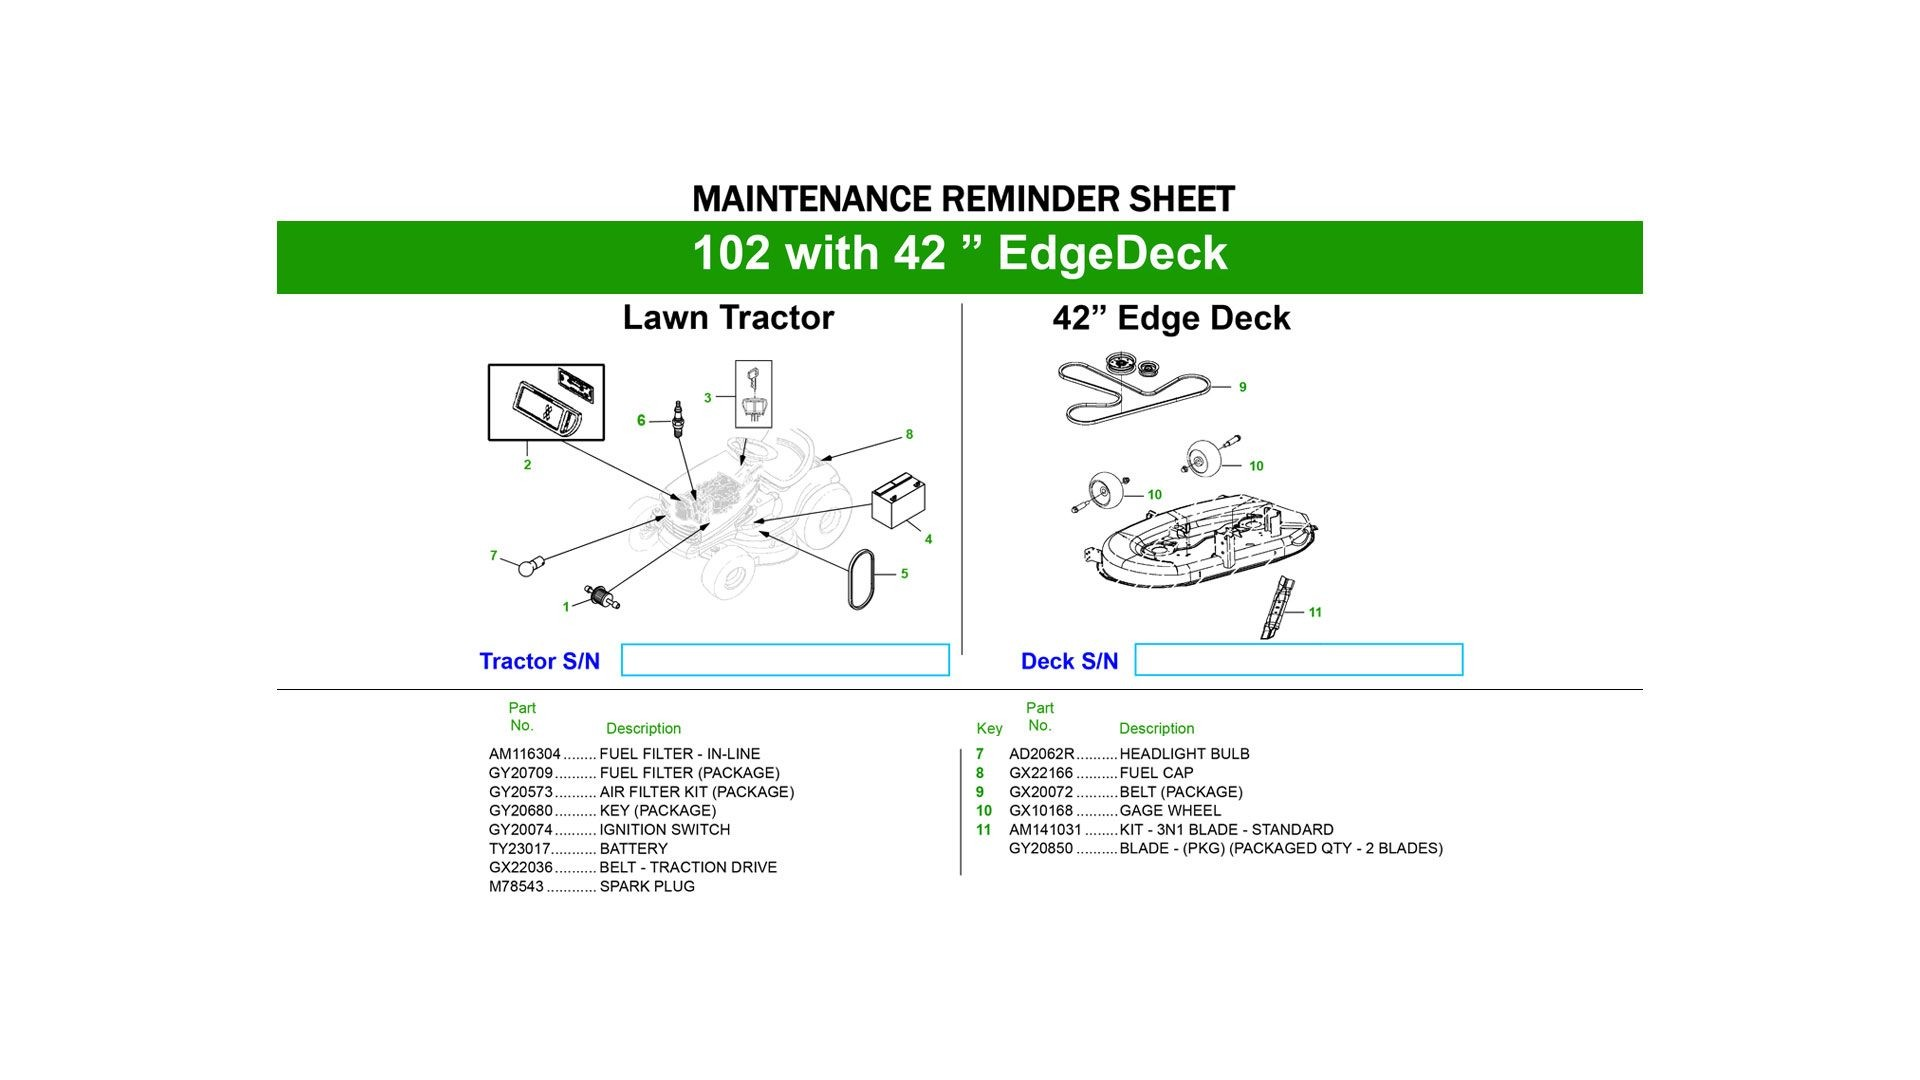 John Deere D130 Wiring Diagram Quick Reference Guides Of John Deere D130 Wiring Diagram